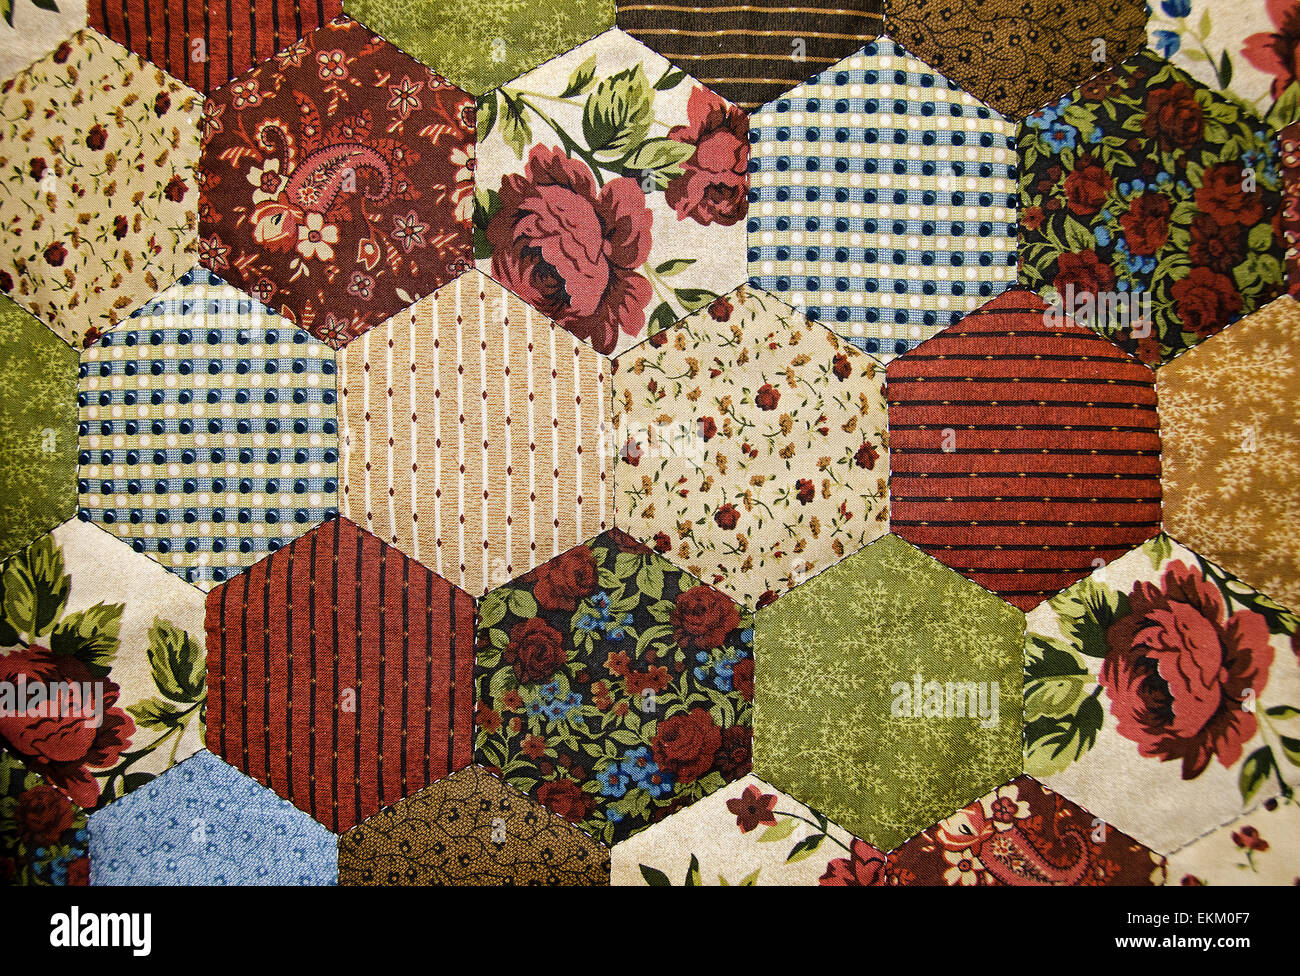 Close up of a hexagon patchwork quilt. - Stock Image